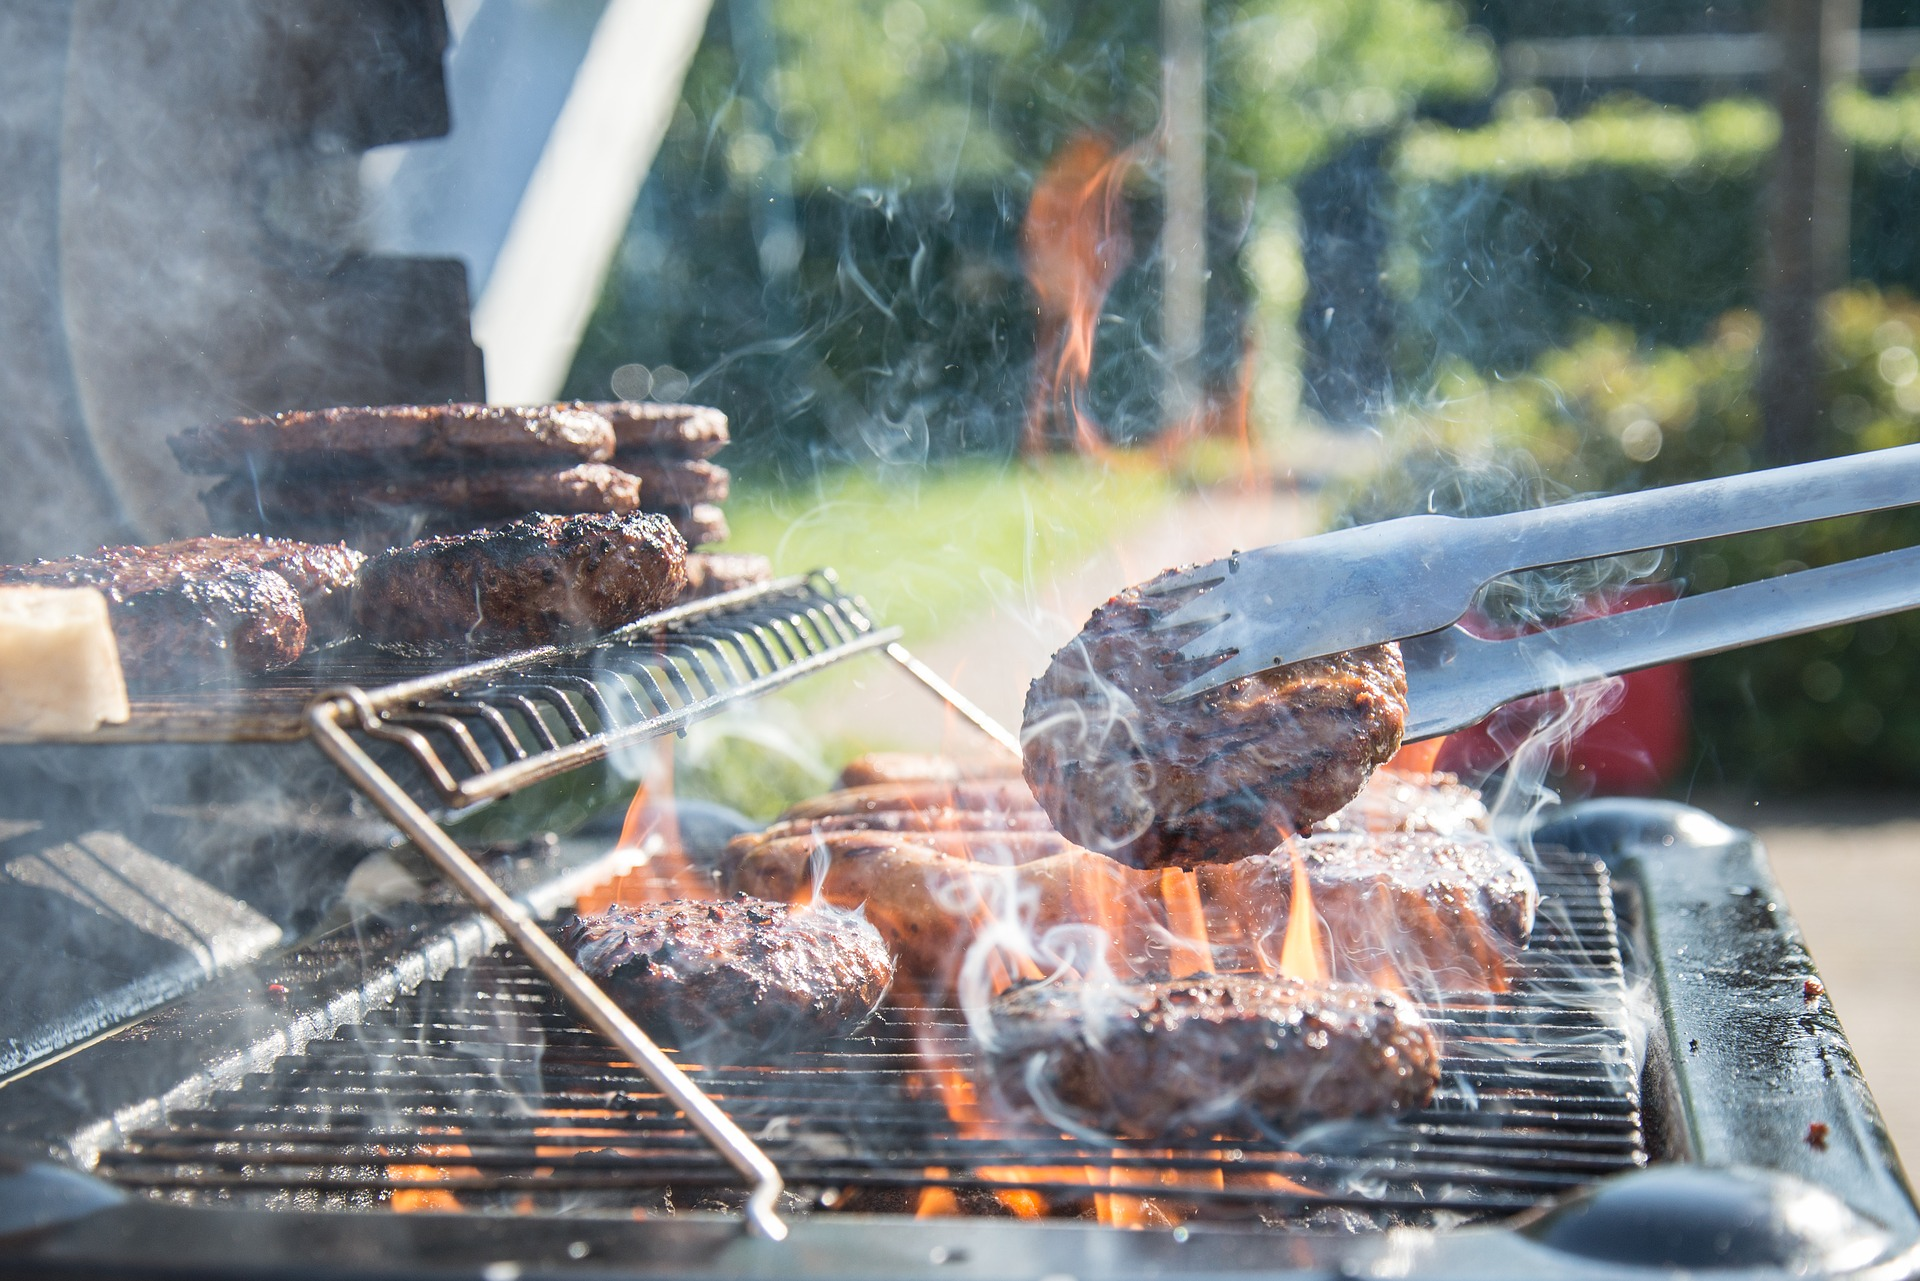 A person barbecuing hamburgers and hot dogs on the grill.